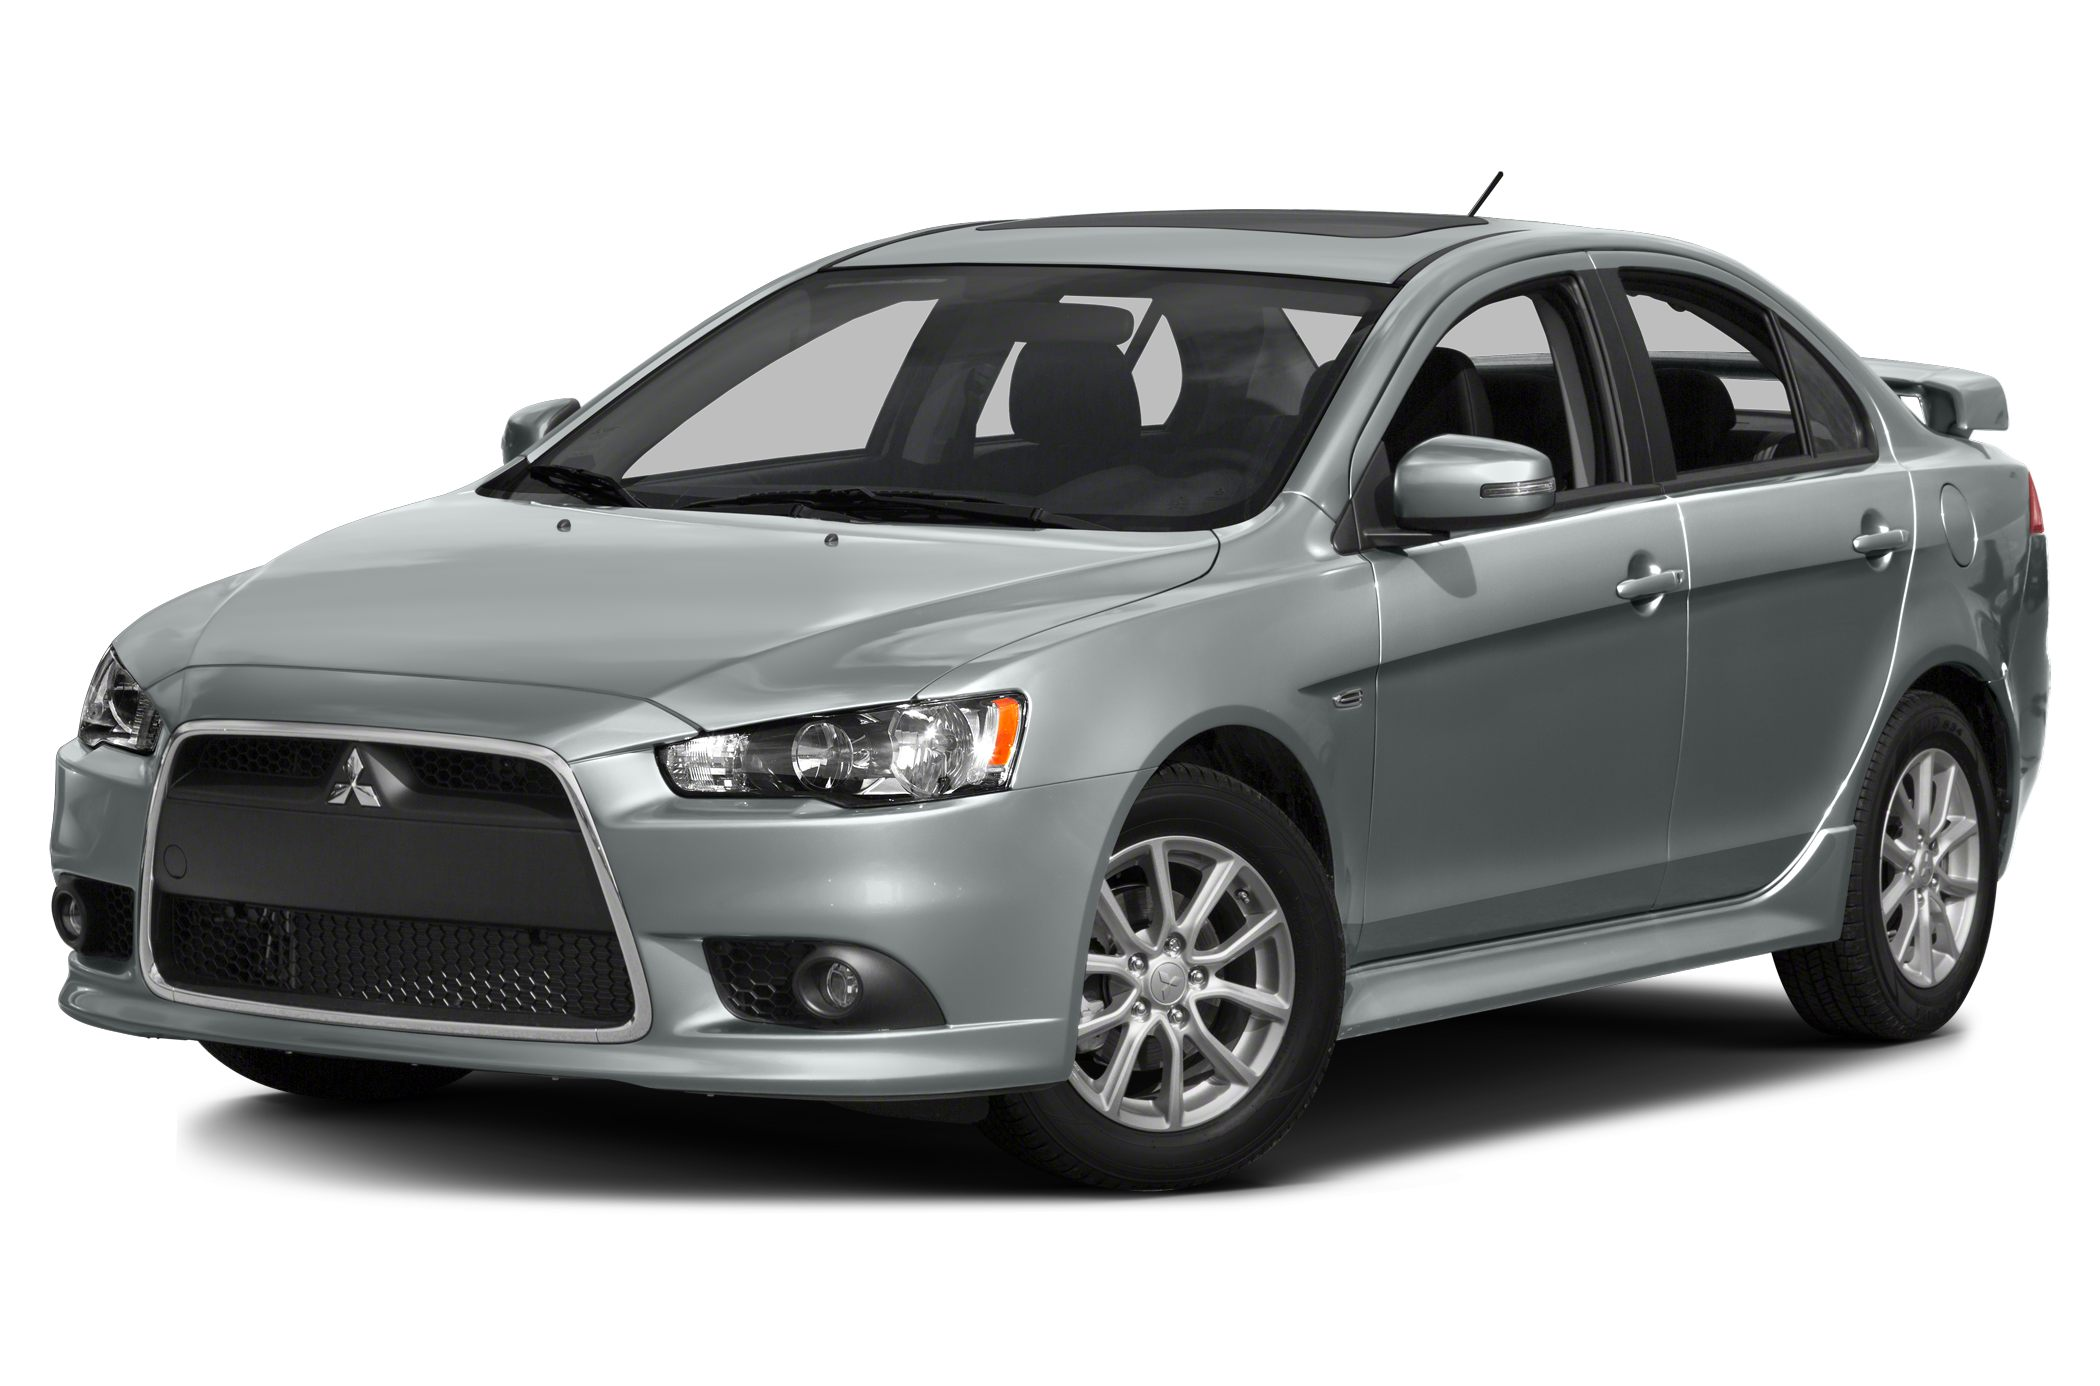 2015 Mitsubishi Lancer SE Sedan for sale in Erie for $21,805 with 0 miles.